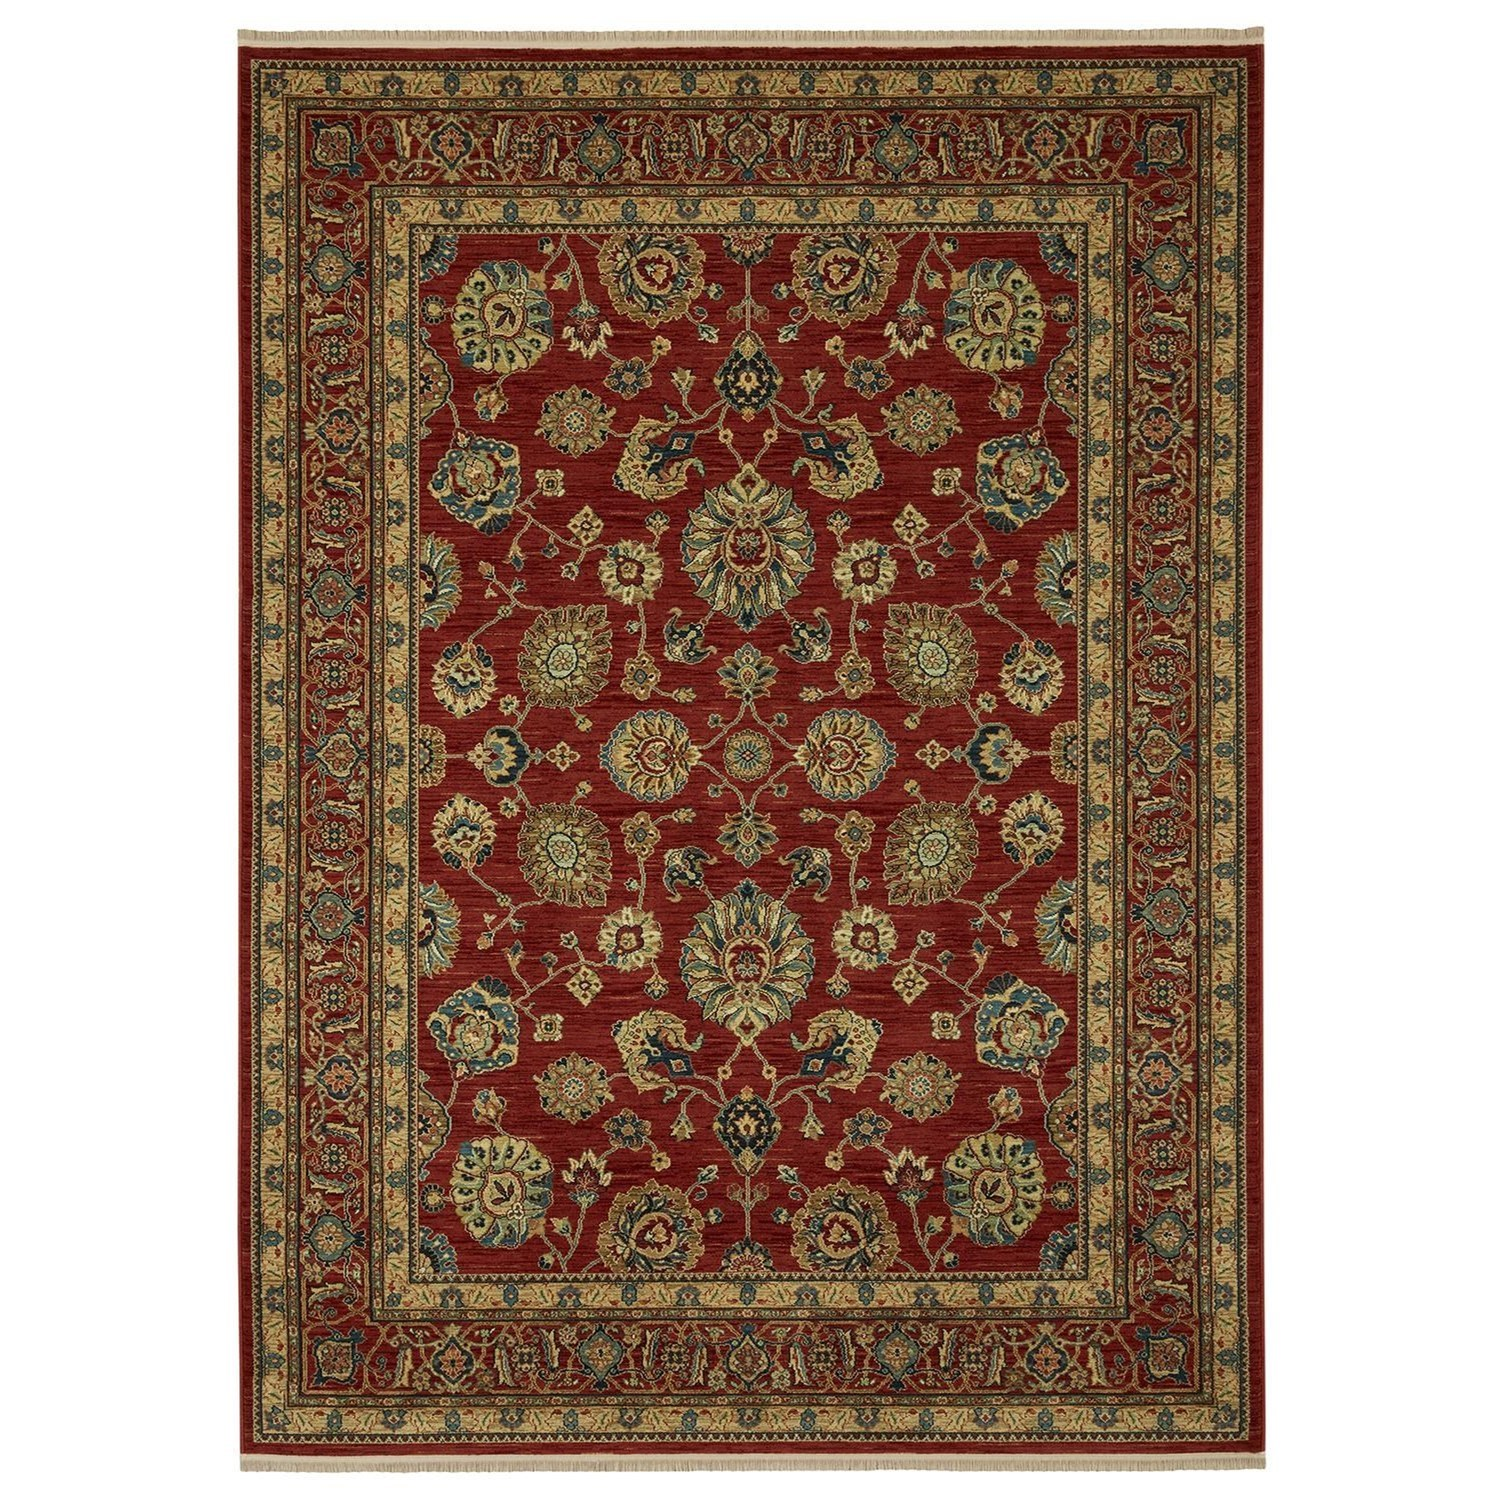 Sovereign 8'8x12' Sultana Red Rug by Karastan Rugs at Darvin Furniture